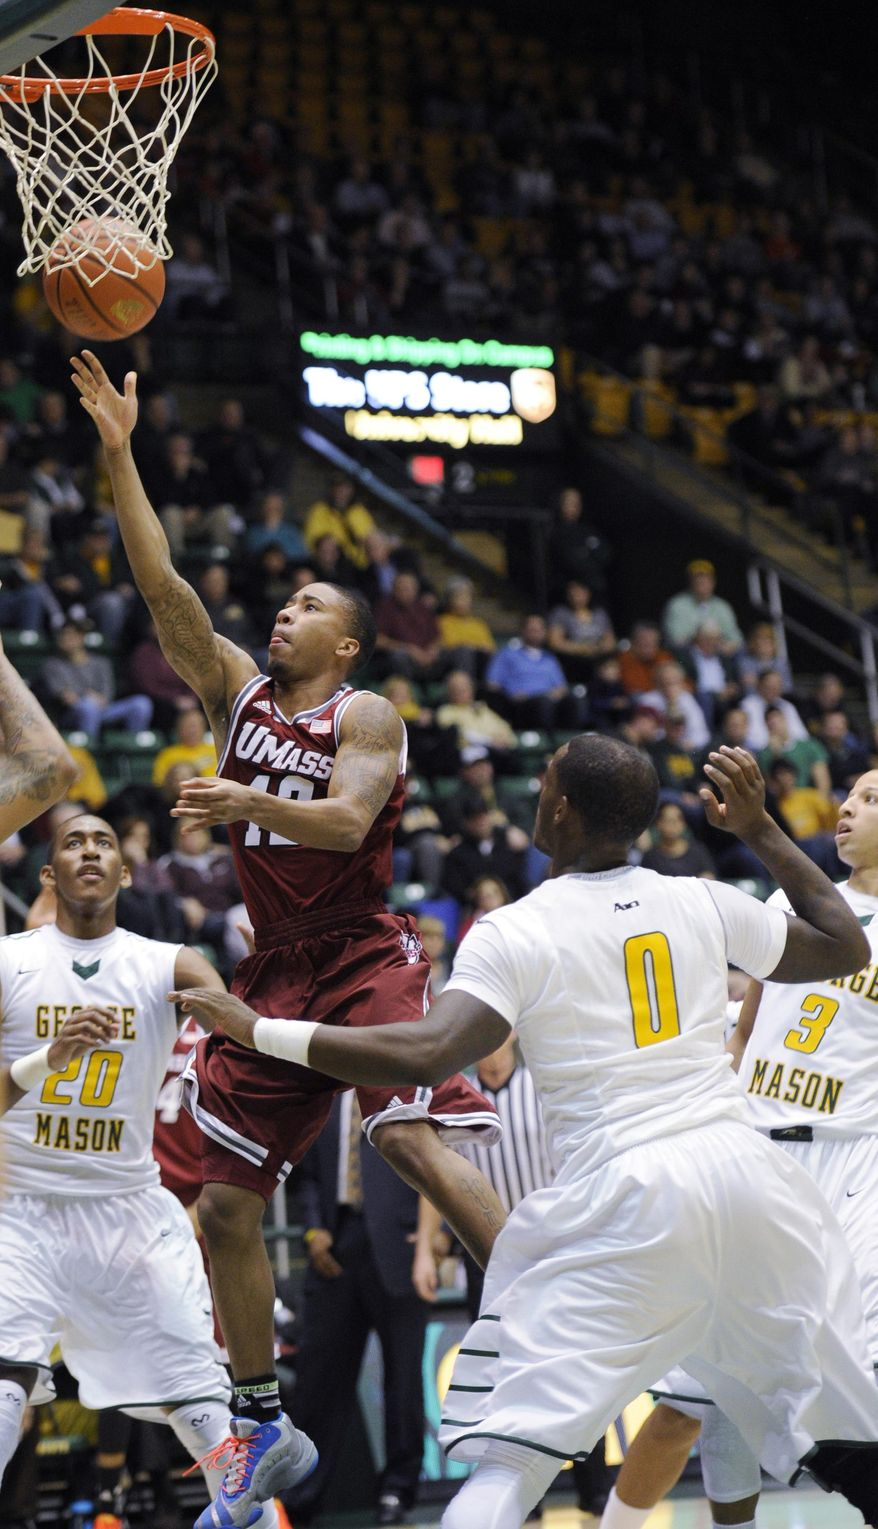 Massachusetts guard Trey Davis (12) goes to the basket against George Mason forward Jalen Jenkins (20) and Bryon Allen (0) during the first half of an NCAA college basketball game, Wednesday, Jan. 15, 2014, in Fairfax, Va. (AP Photo/Nick Wass)